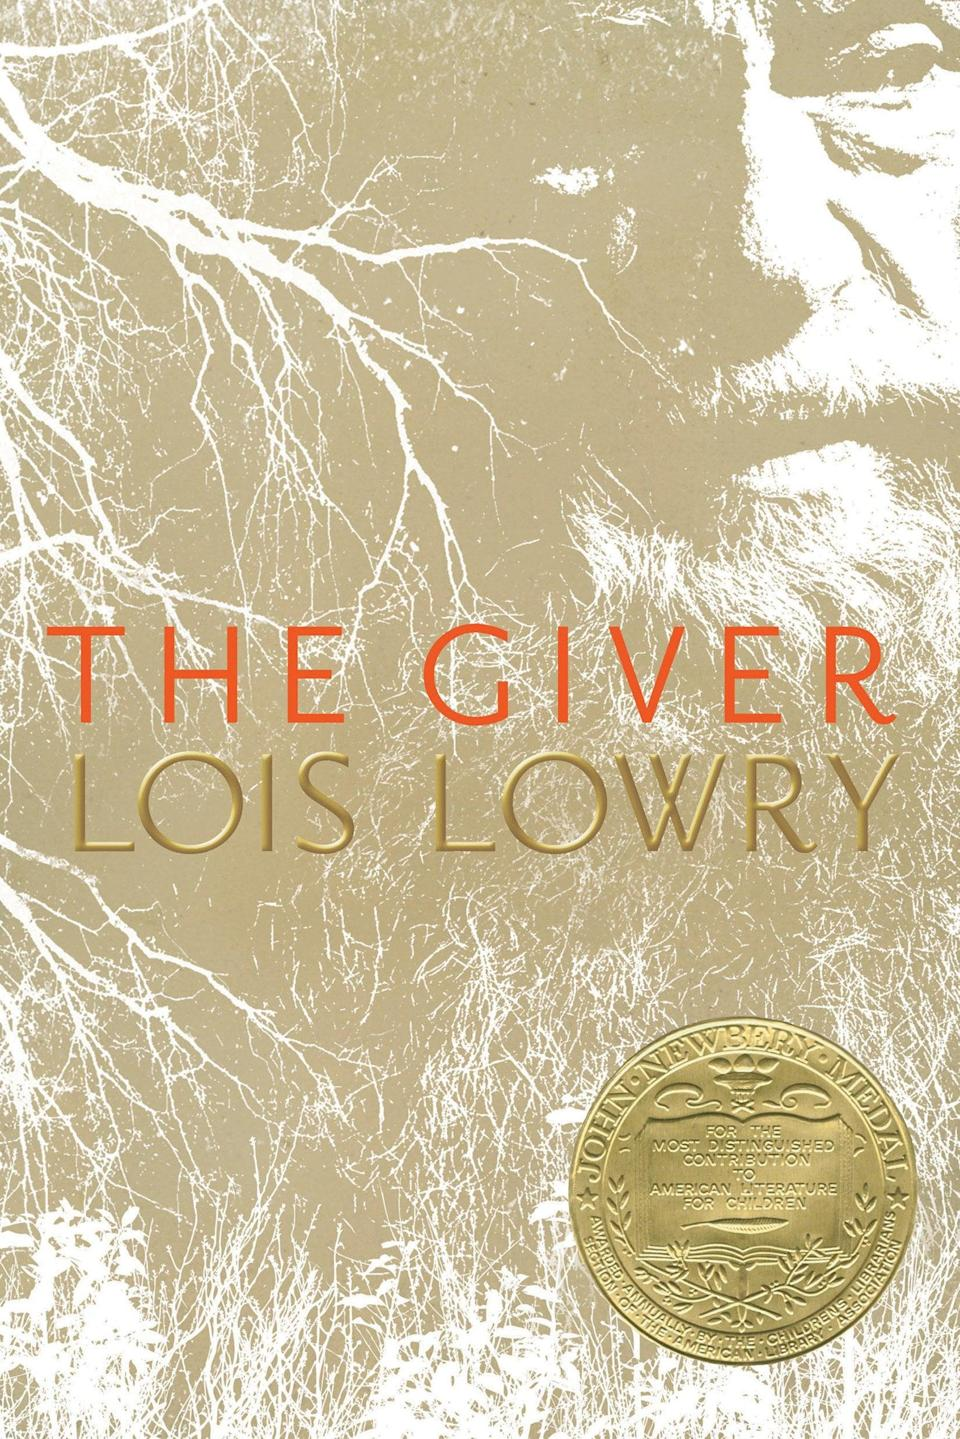 "<p><a href=""https://www.popsugar.com/buy?url=https%3A%2F%2Fwww.amazon.com%2FGiver-Quartet-Lois-Lowry%2Fdp%2F0547995660%2Fref%3Dtmm_hrd_swatch_0%3F_encoding%3DUTF8%26qid%3D%26sr%3D&p_name=%3Cb%3EThe%20Giver%3C%2Fb%3E%20by%20Lois%20Lowry&retailer=amazon.com&evar1=tres%3Auk&evar9=43250262&evar98=https%3A%2F%2Fwww.popsugar.com%2Flove%2Fphoto-gallery%2F43250262%2Fimage%2F43252272%2FGiver-Lois-Lowry&list1=books%2Cwomen%2Creading%2Cinternational%20womens%20day%2Cwomens%20history%20month&prop13=api&pdata=1"" class=""link rapid-noclick-resp"" rel=""nofollow noopener"" target=""_blank"" data-ylk=""slk:The Giver by Lois Lowry""><b>The Giver</b> by Lois Lowry</a></p>"